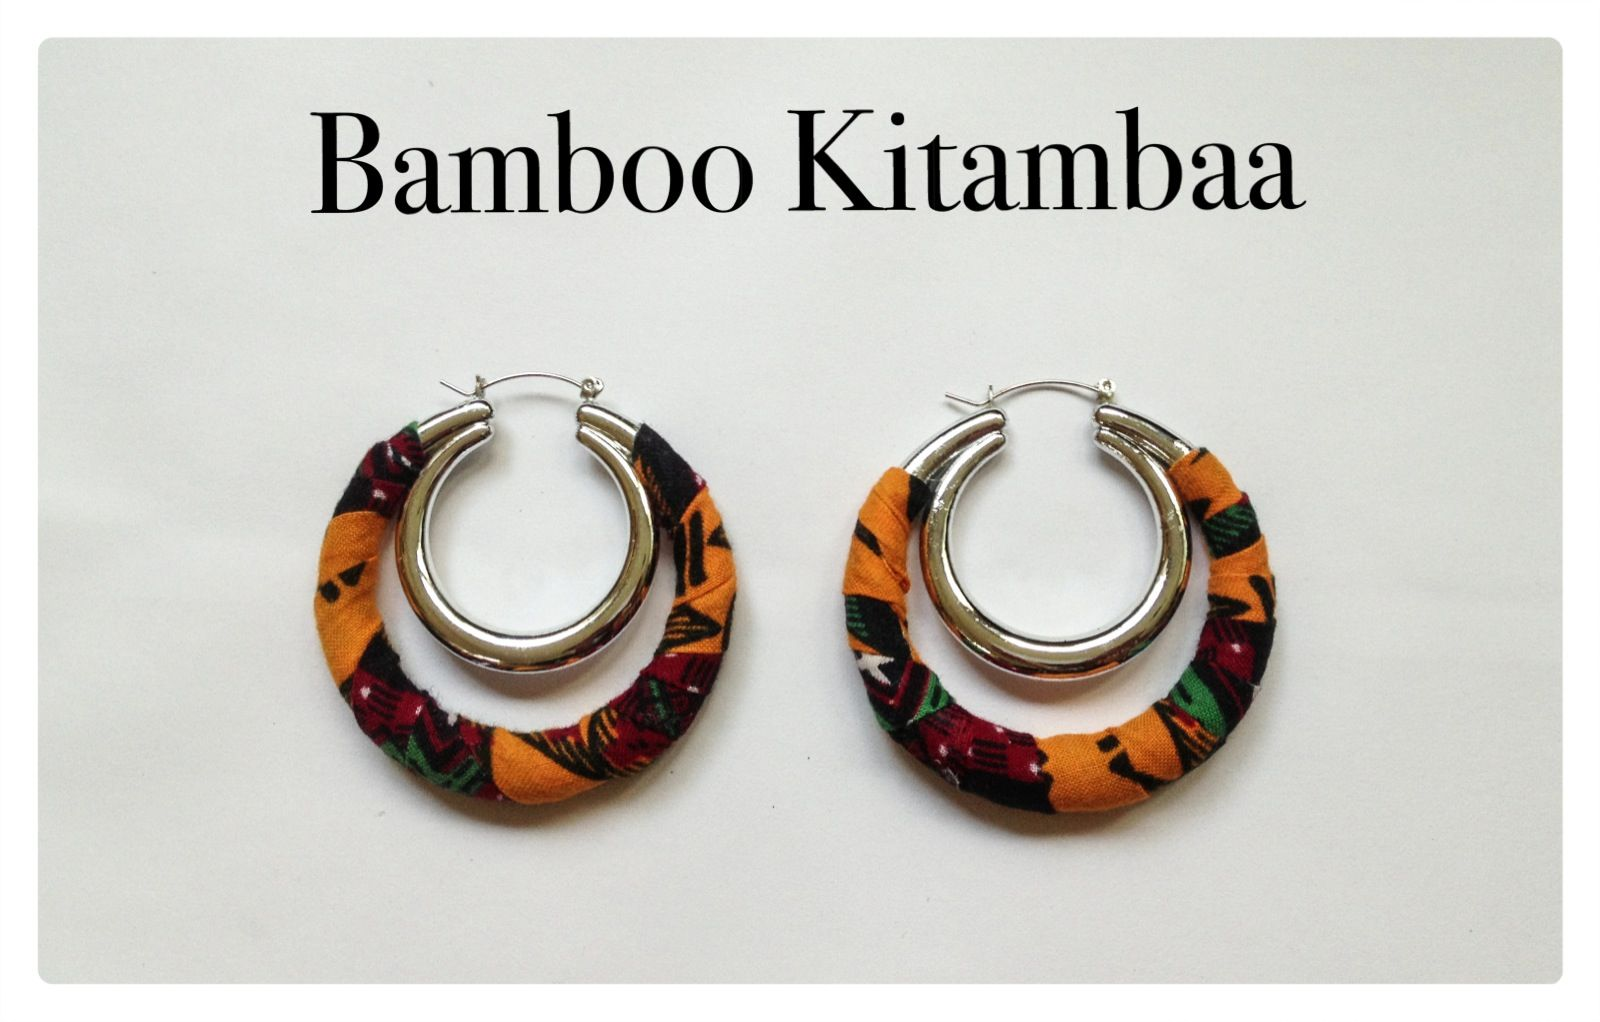 Bamboo Kitambaa pagne Earrings aretes boucles d'oreilles wax africa